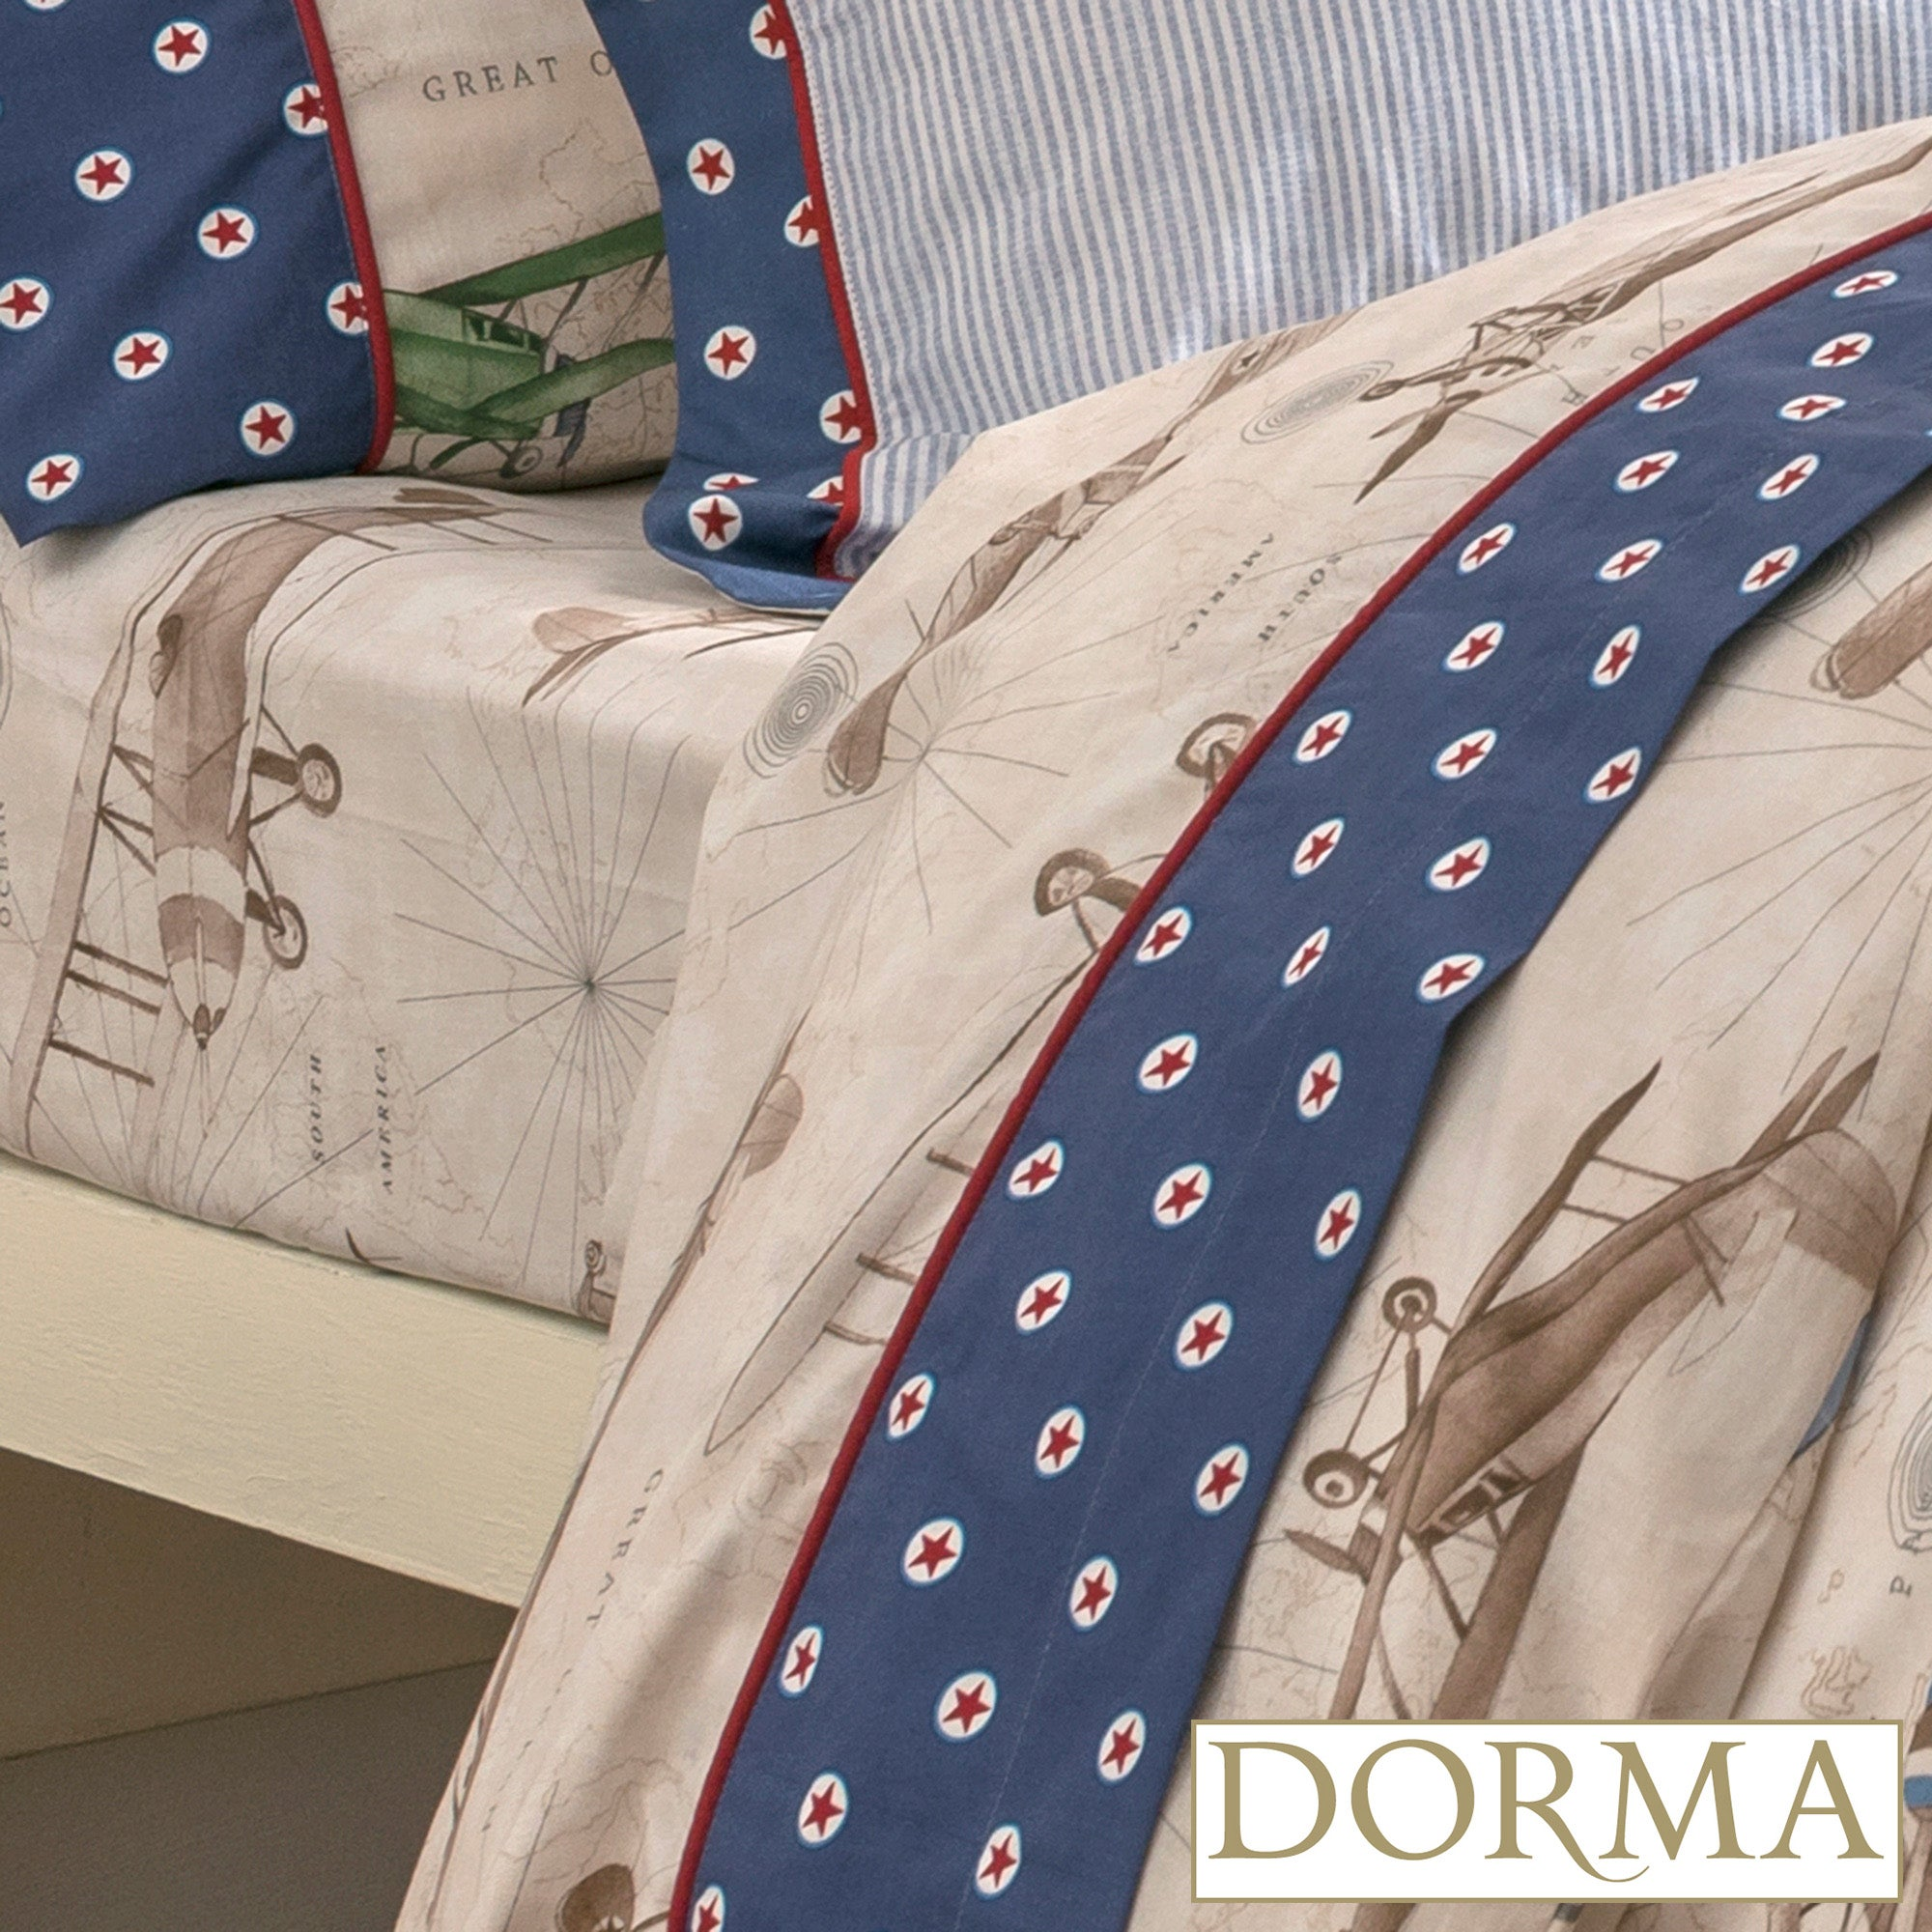 Dorma Blue Vintage Plane Collection Fitted Sheet